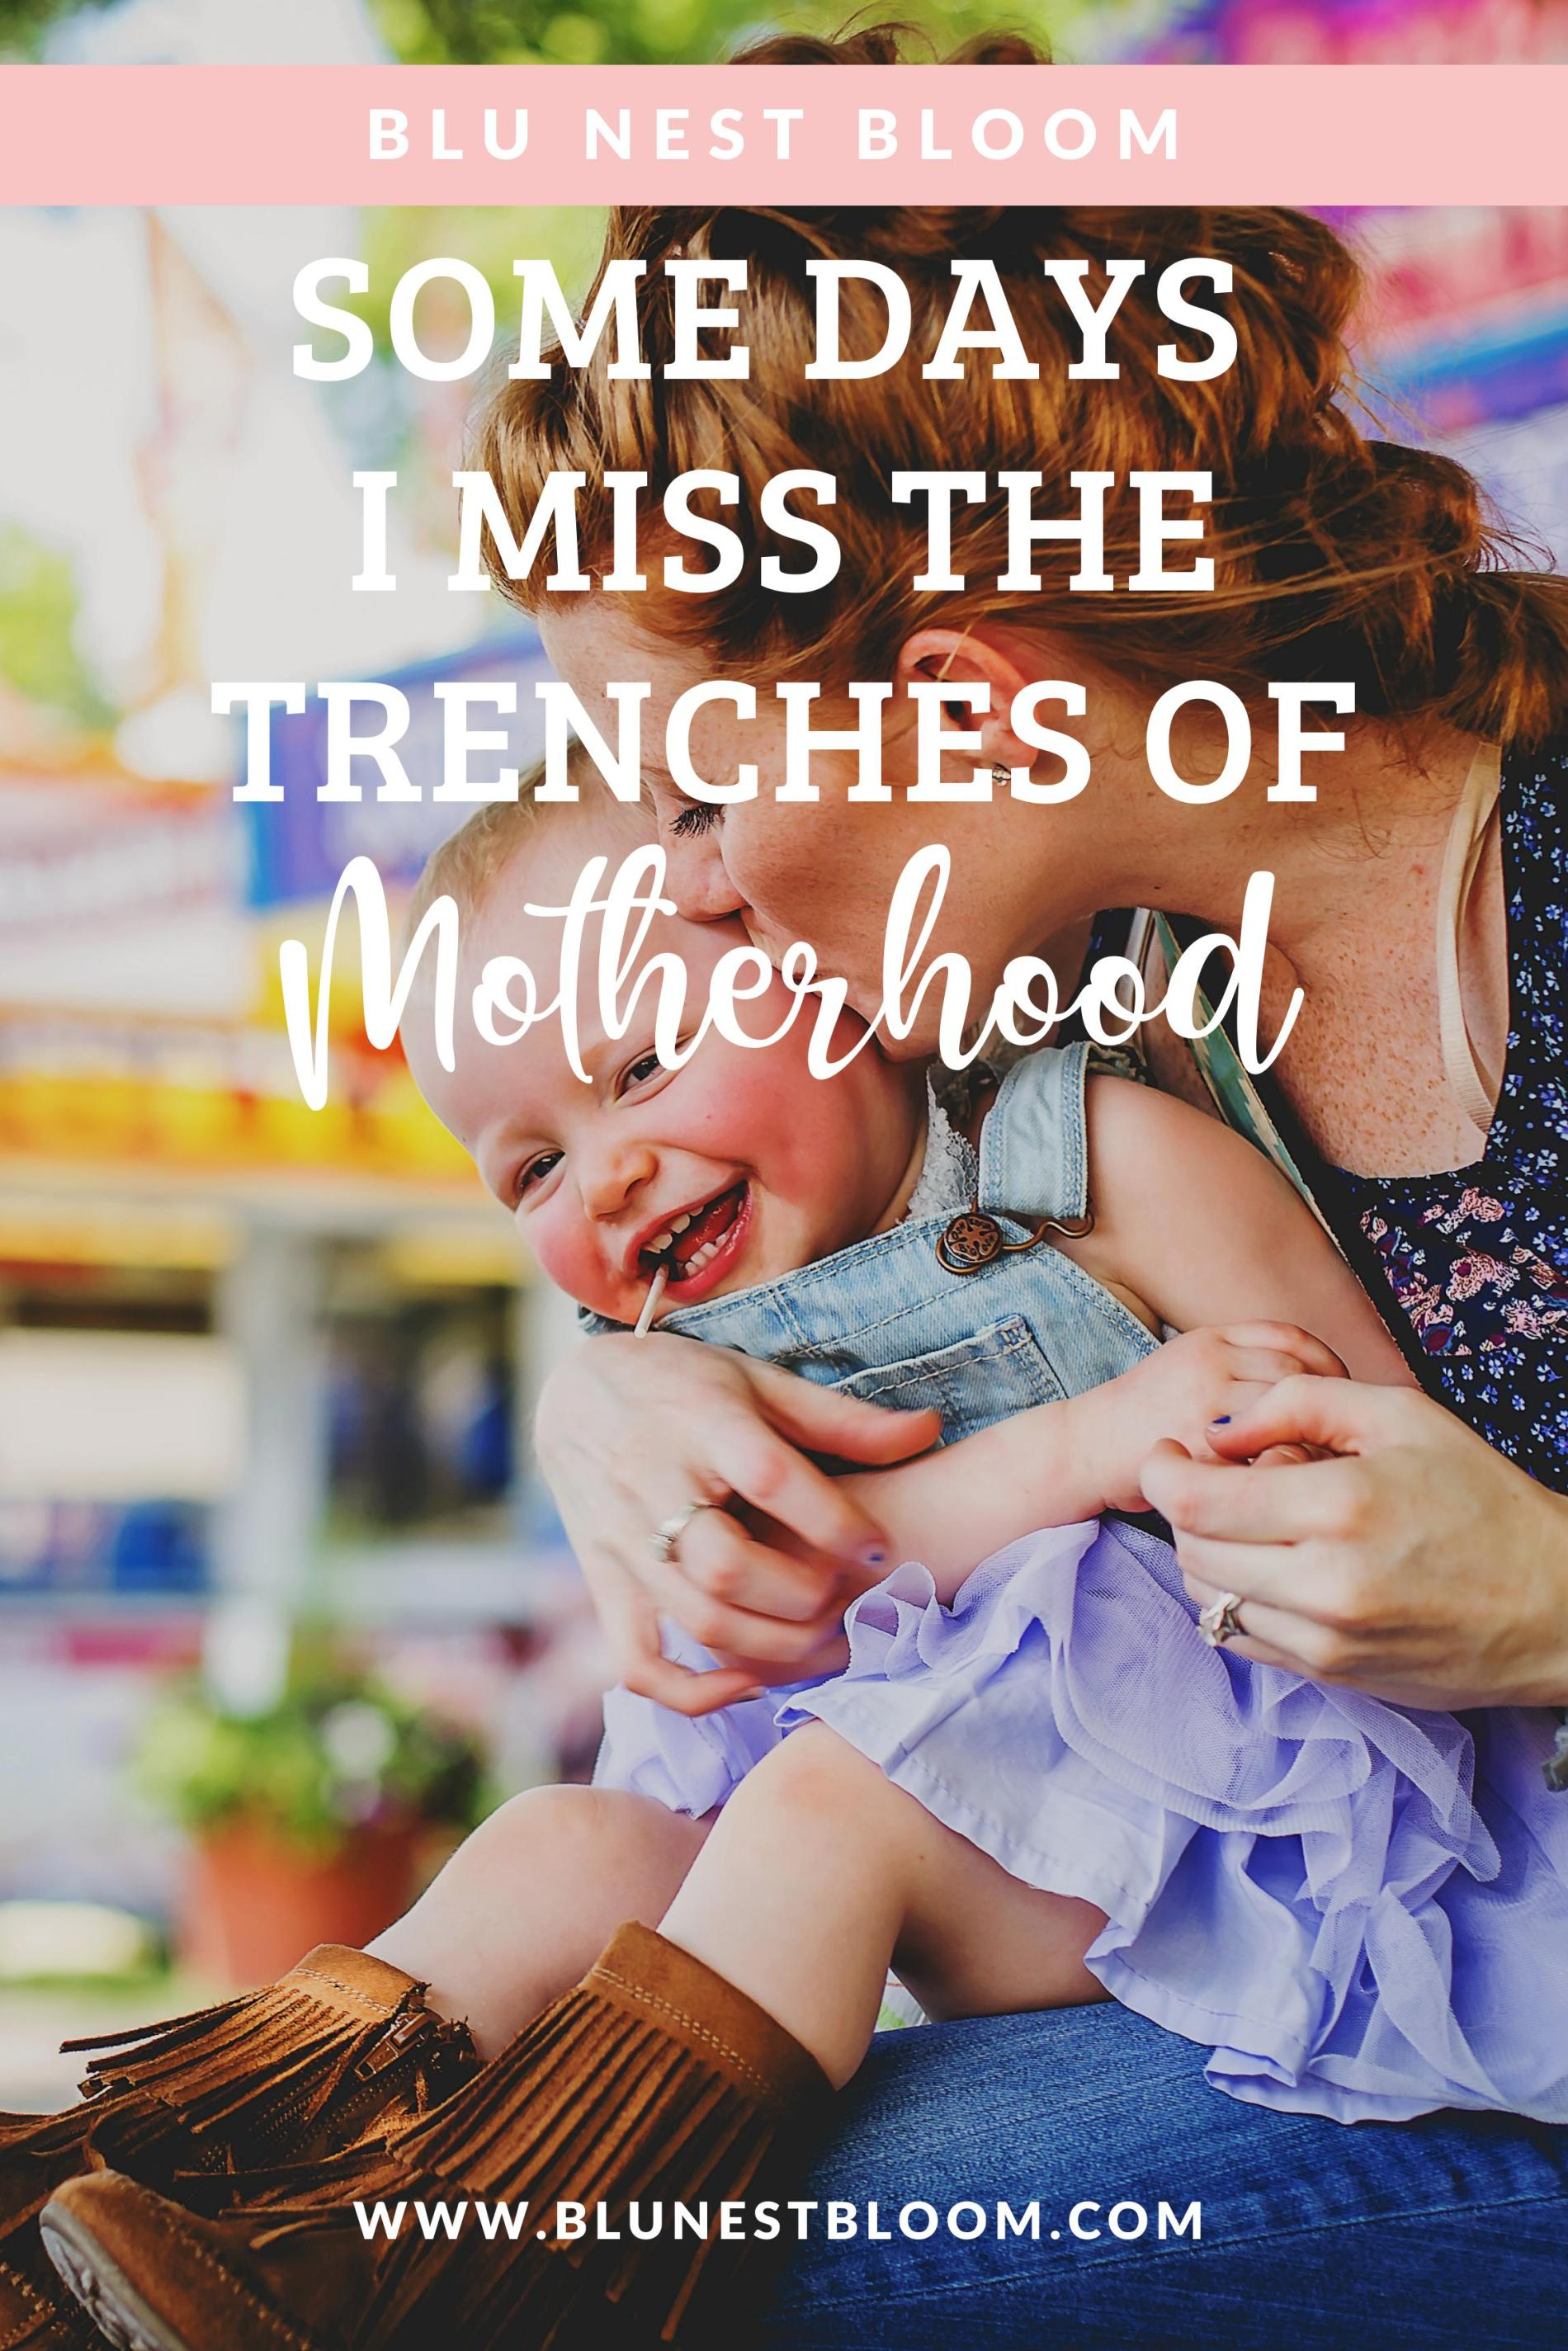 Some Days I Miss the Trenches of Motherhood